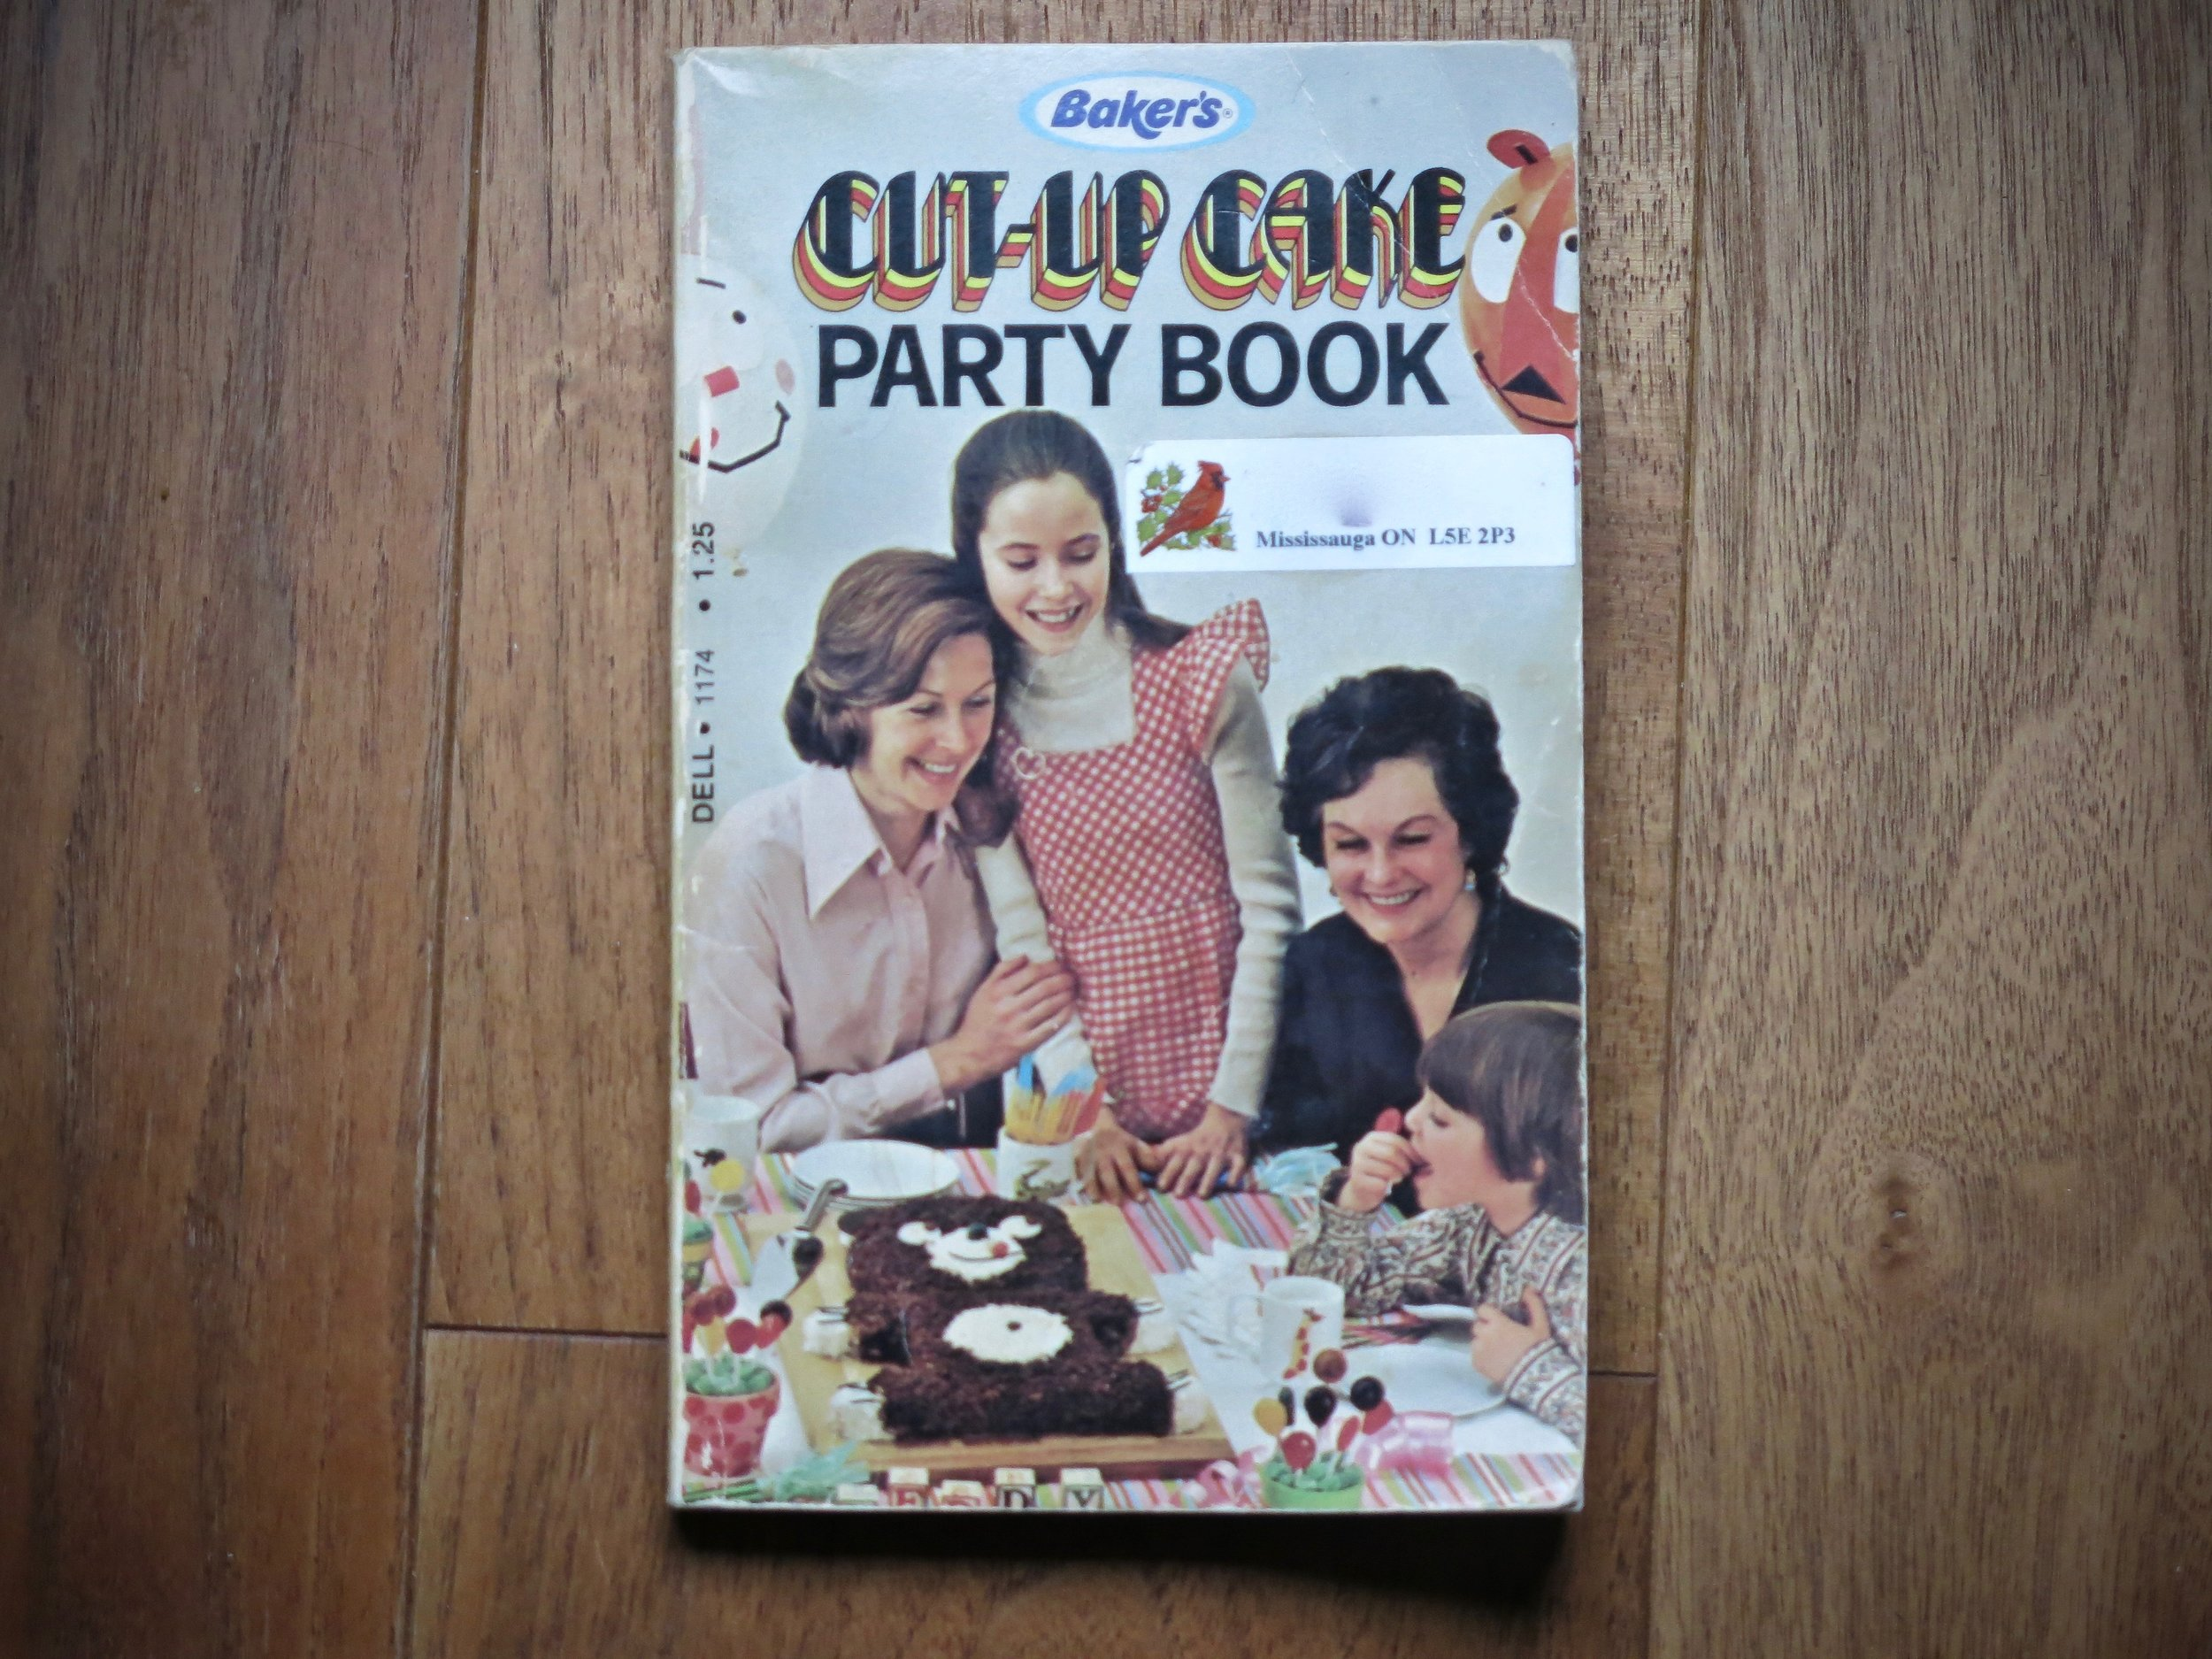 Cut Up Cake Party Book.jpeg